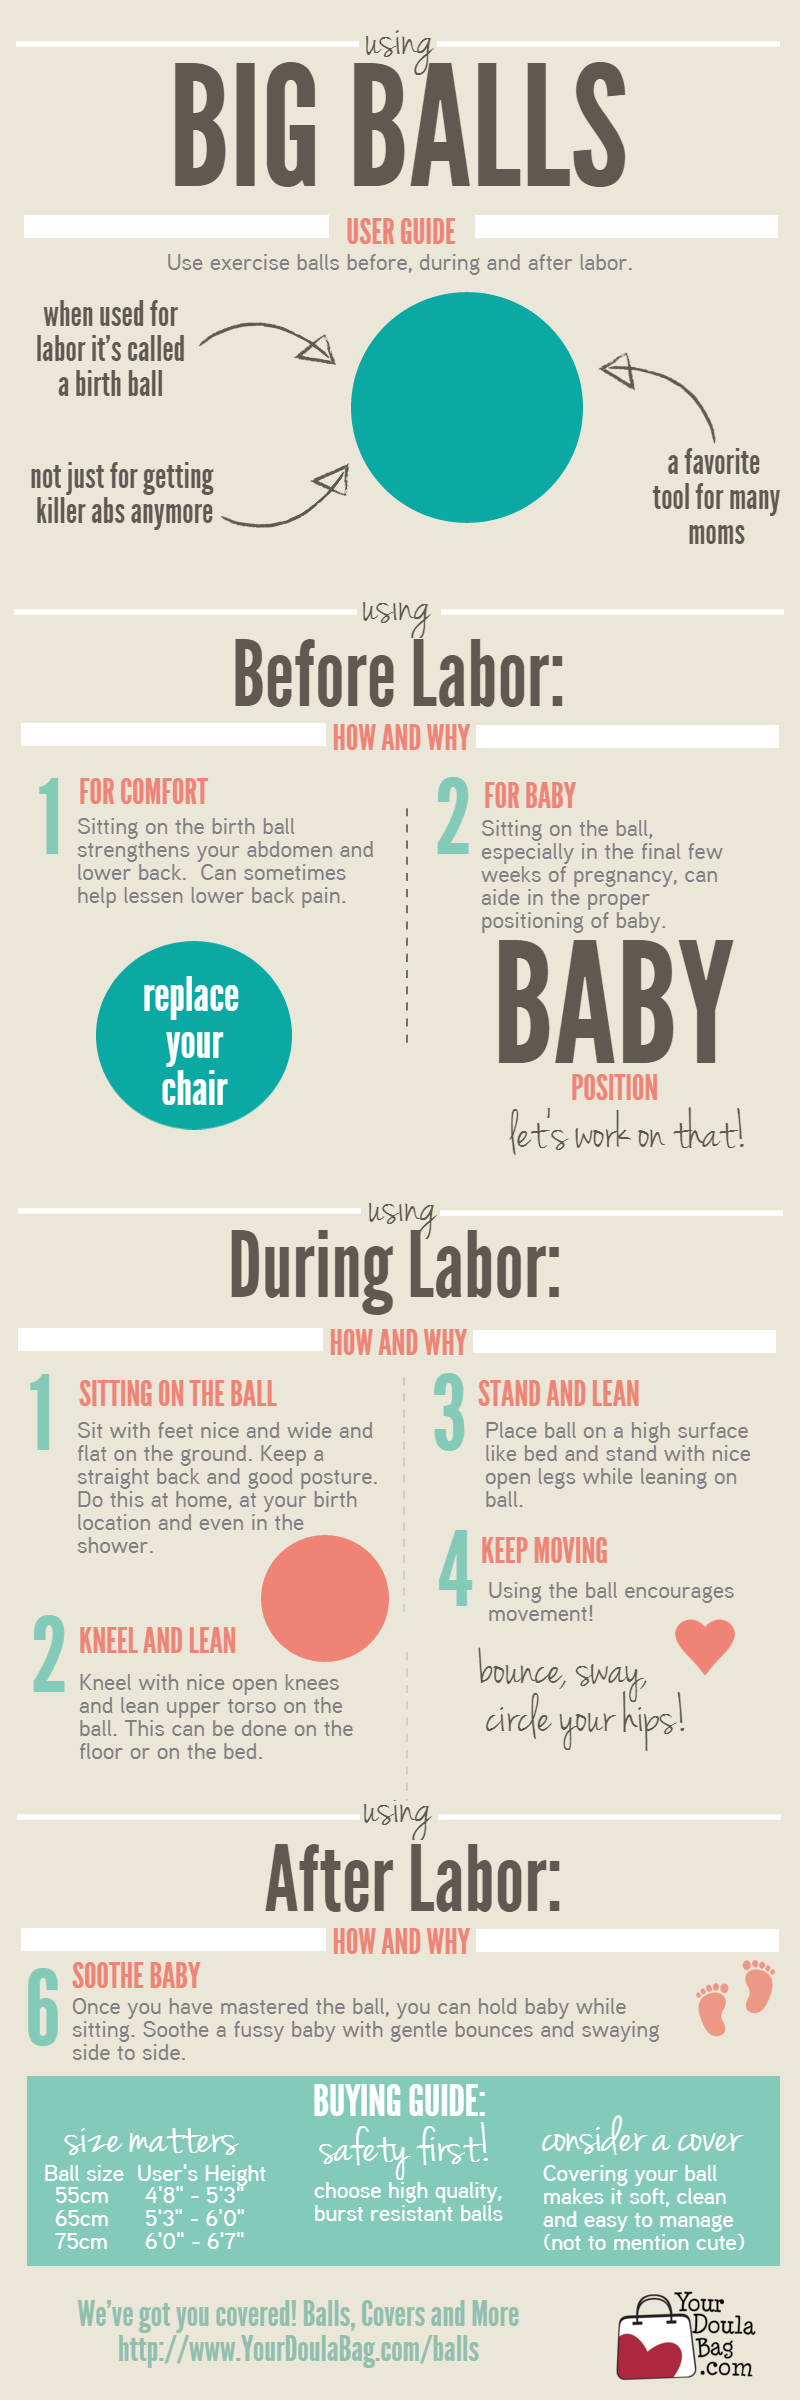 Italian Boy Name: Birth Balls And Labor - How To Use Infographic